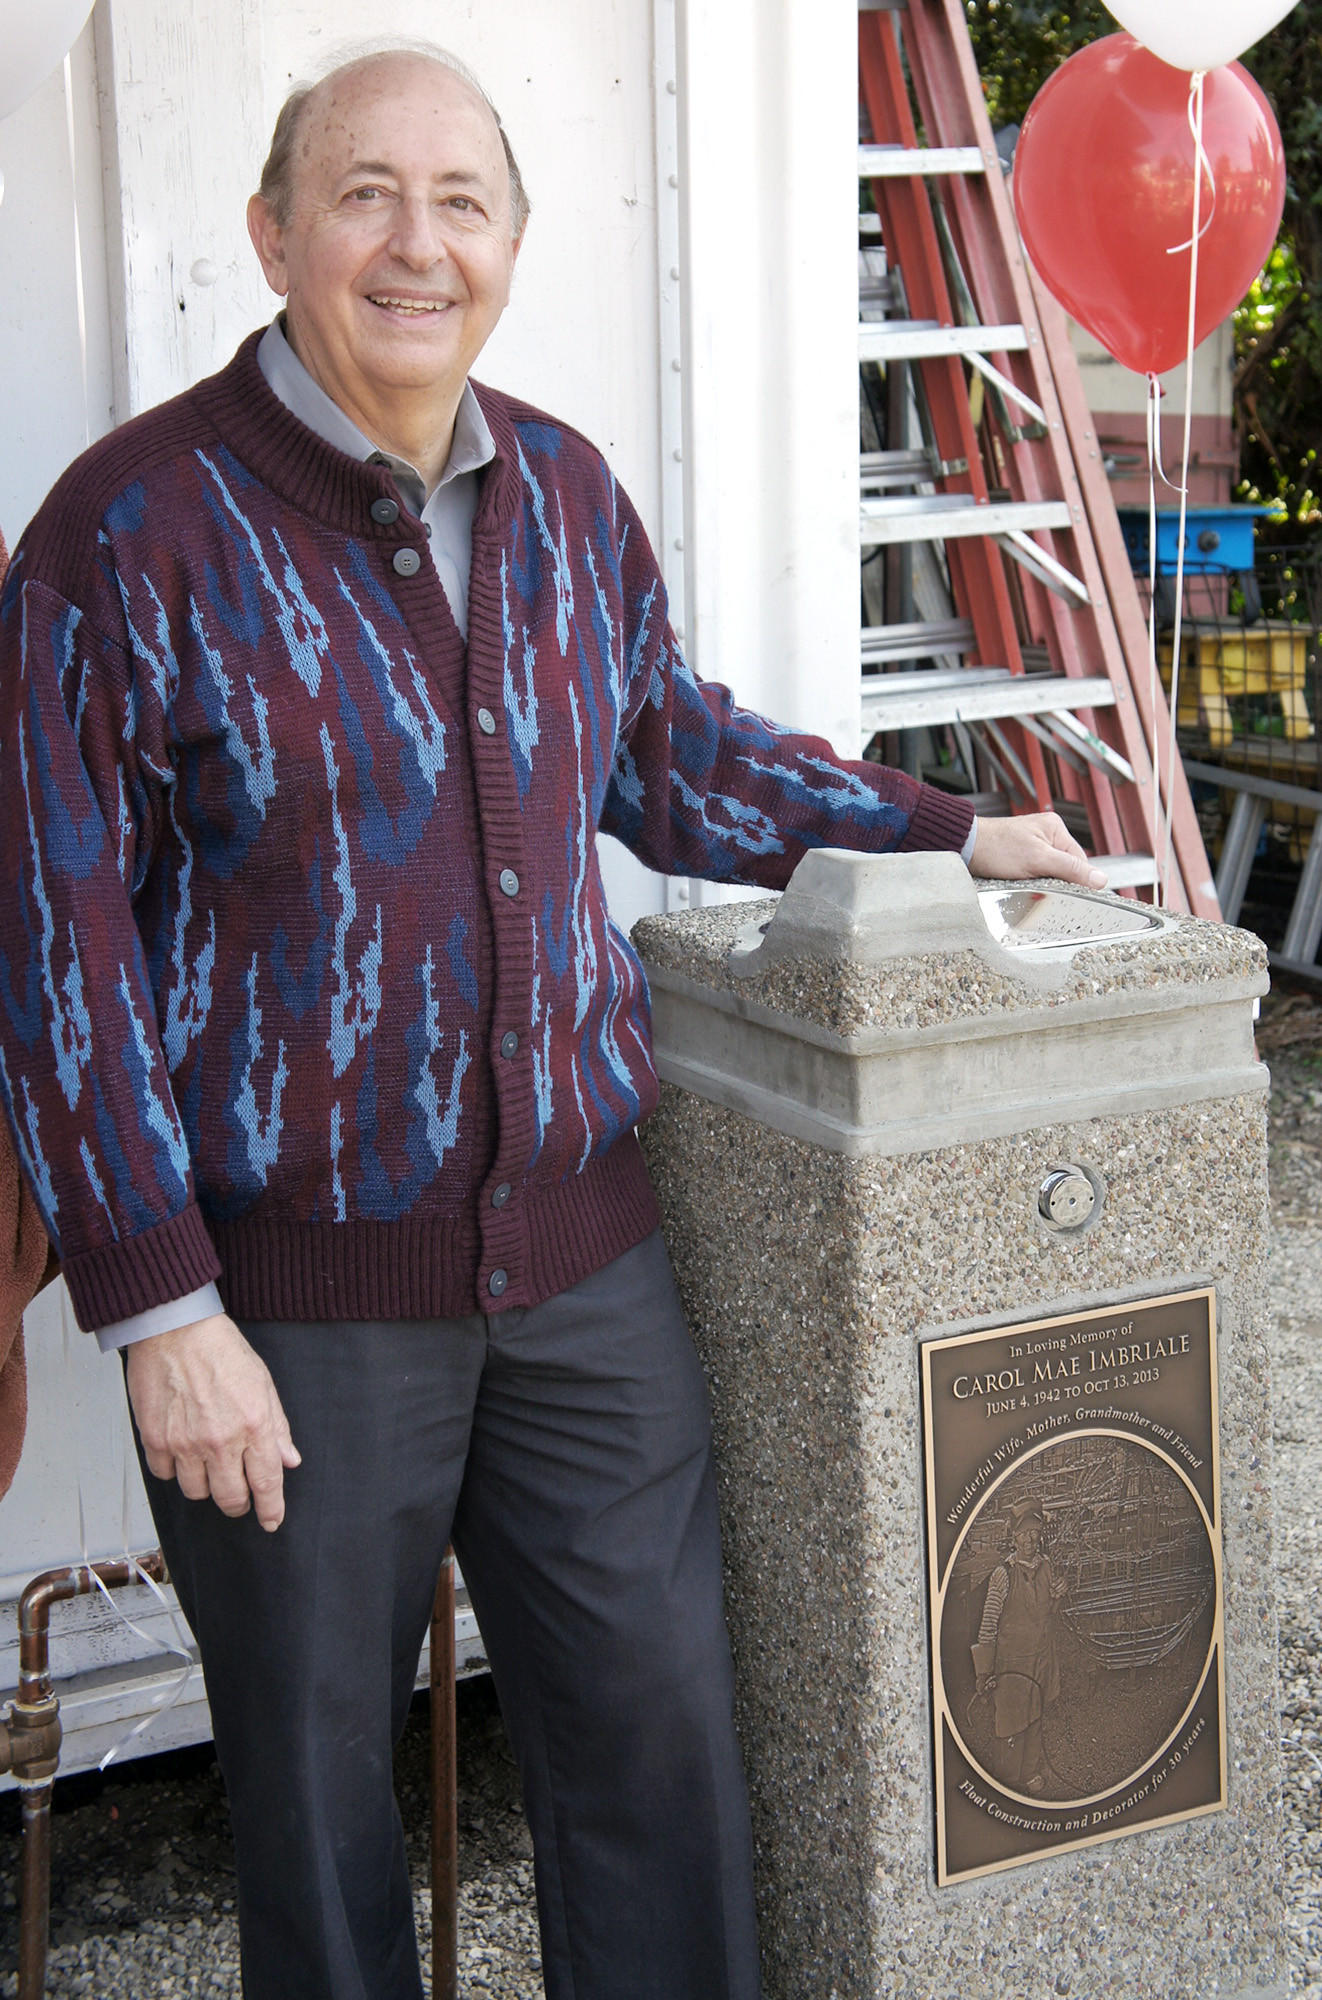 La Cañada resident Bill Imbriale stands next to a memorial drinking fountain dedicated Saturday to his wife, Carol Imbriale, by the La Cañada Flintridge Tournament of Roses. For more than 30 years, Carol Imbriale built and decorated floats and was often seen wearing welding gear, as depicted in the fountain's plaque. (Courtesy of the LCF Tournament of Roses)